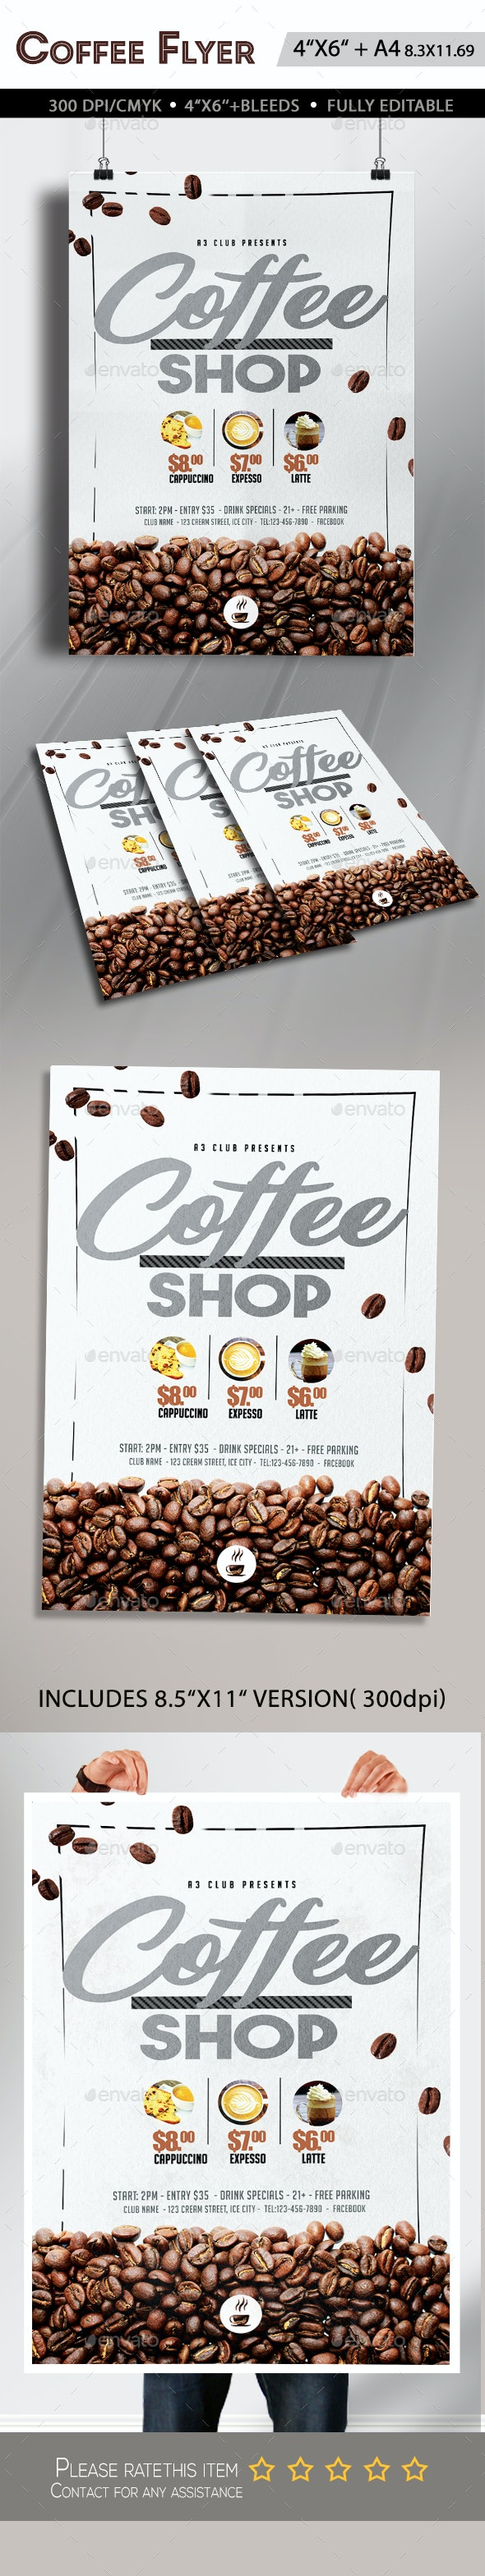 Coffee Flyer Template - Clubs & Parties Events